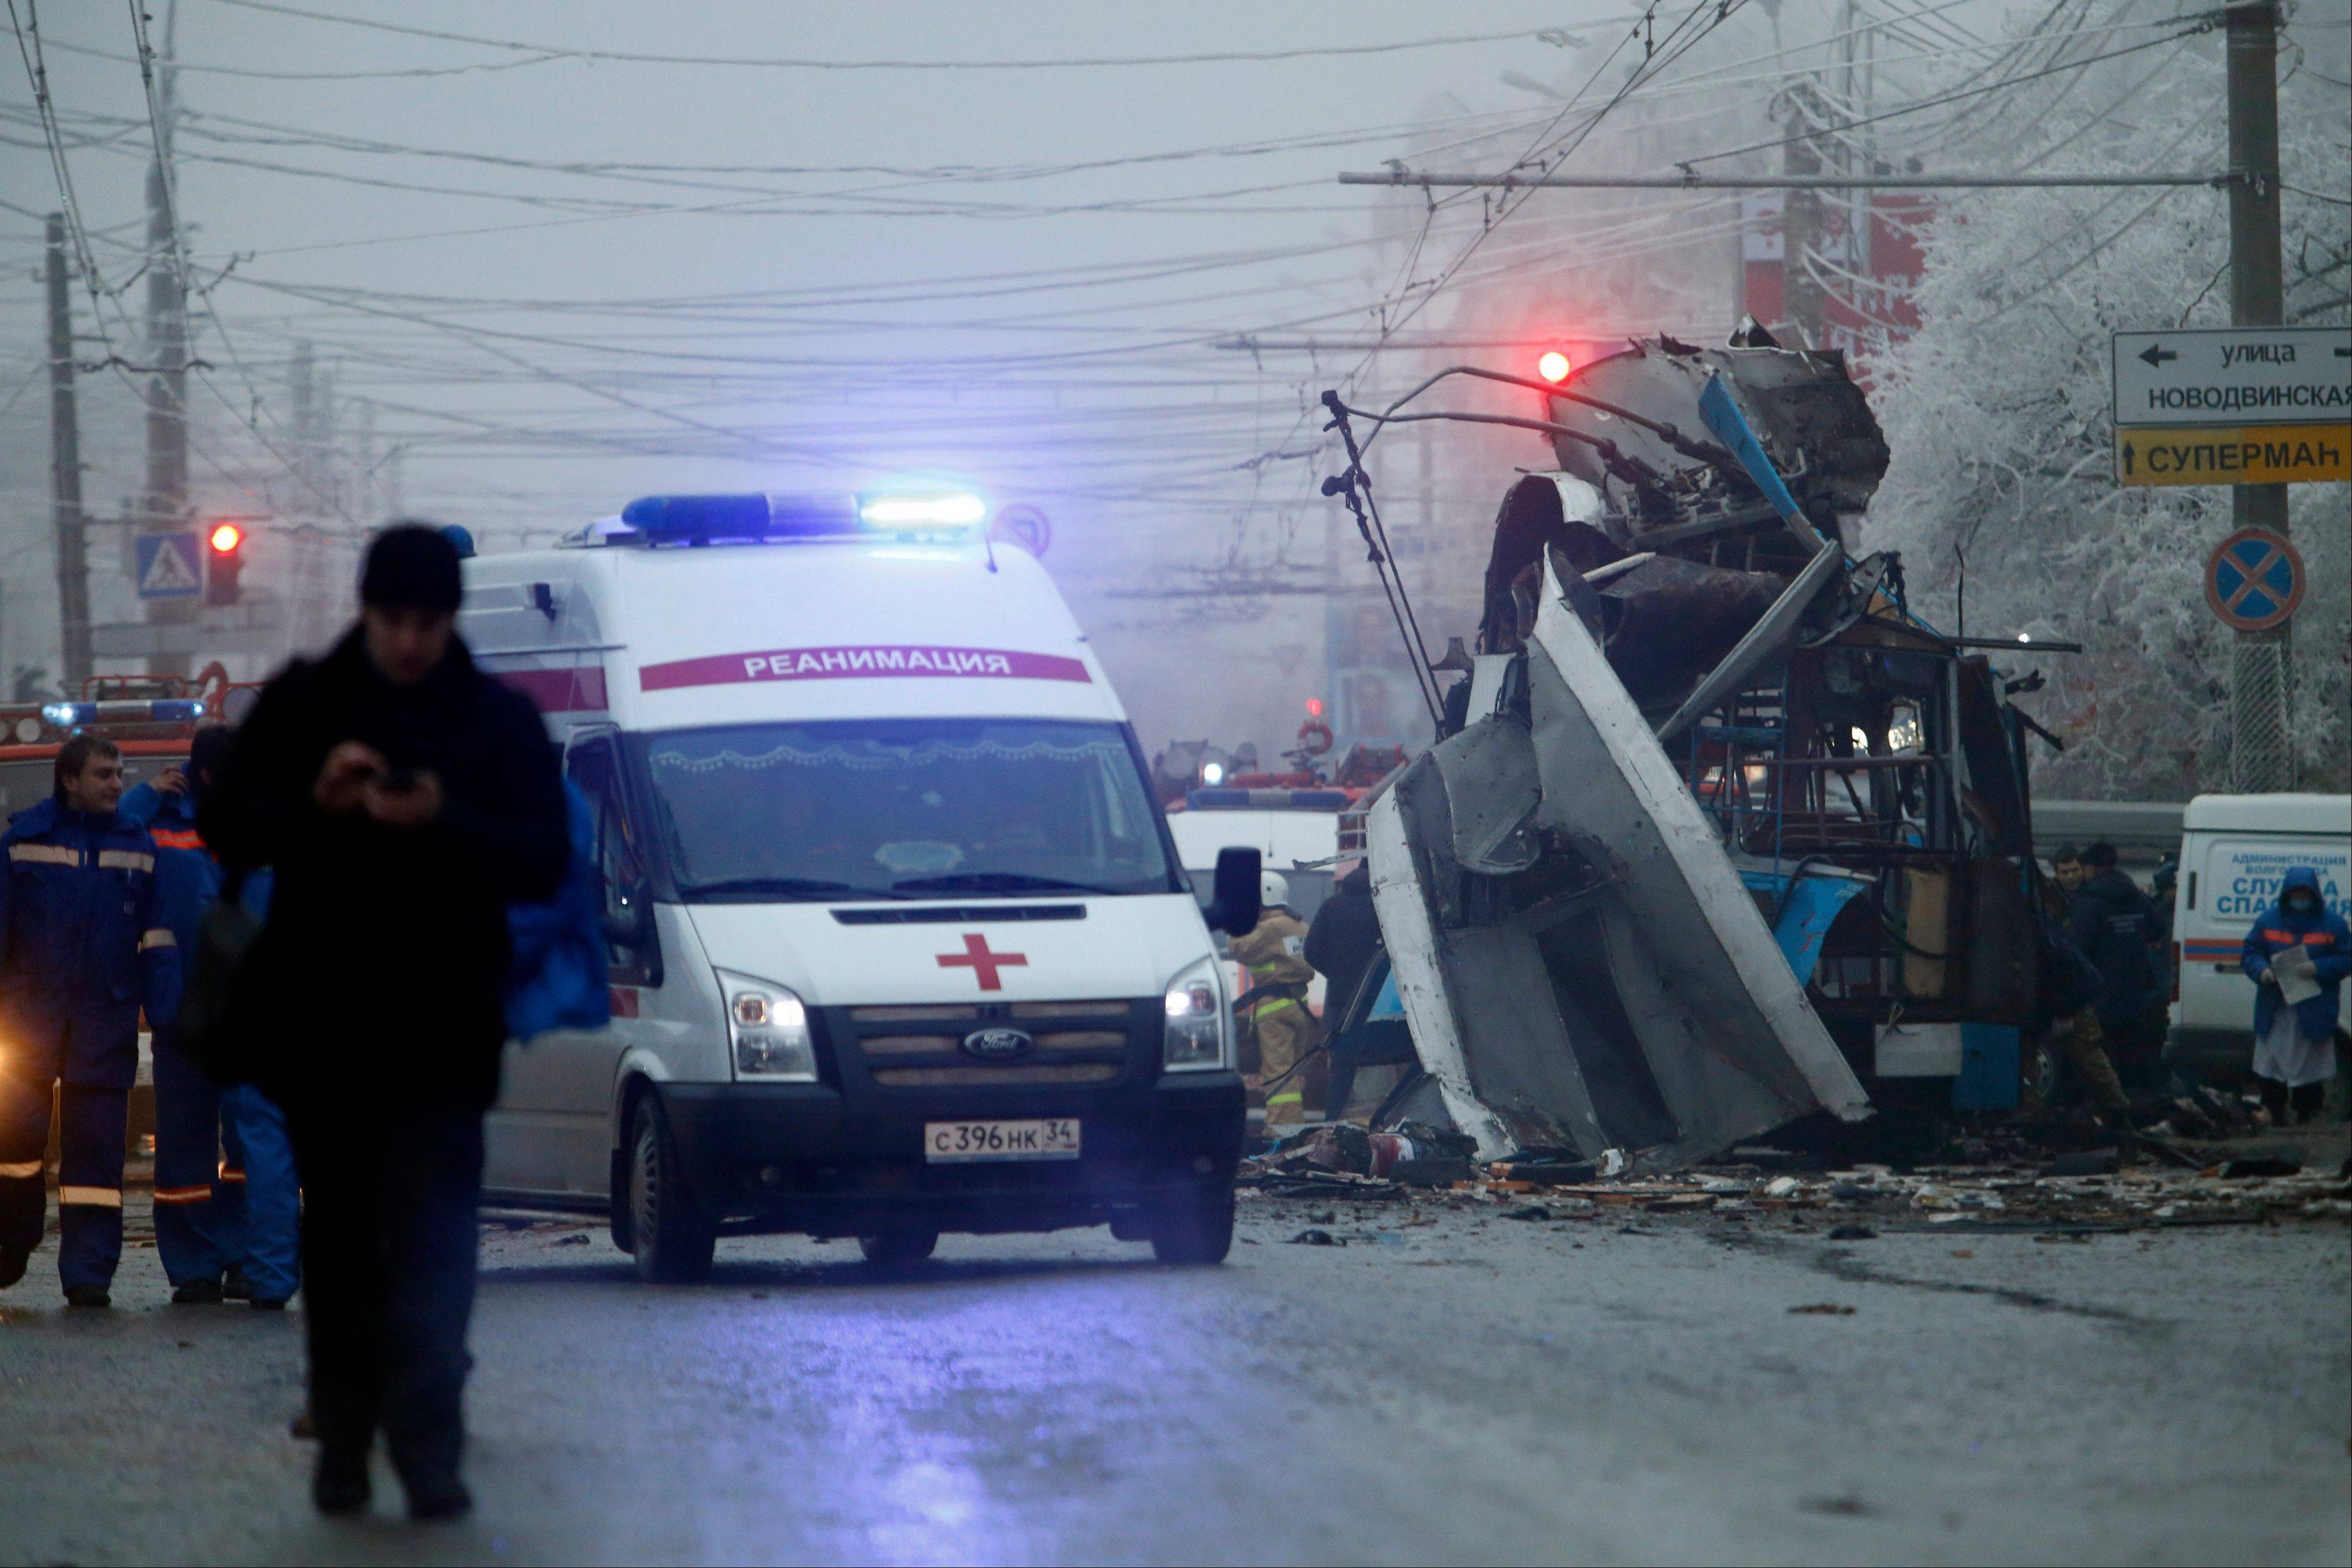 An ambulance leaves the site of an explosion after a bomb blast tore through a trolley bus, background, in the city of Volgograd on Dec. 30, 2013. Russia's counter terrorism agency on Thursday identified the two suicide bombers who struck Volgograd and announced the arrest of two suspected accomplices.